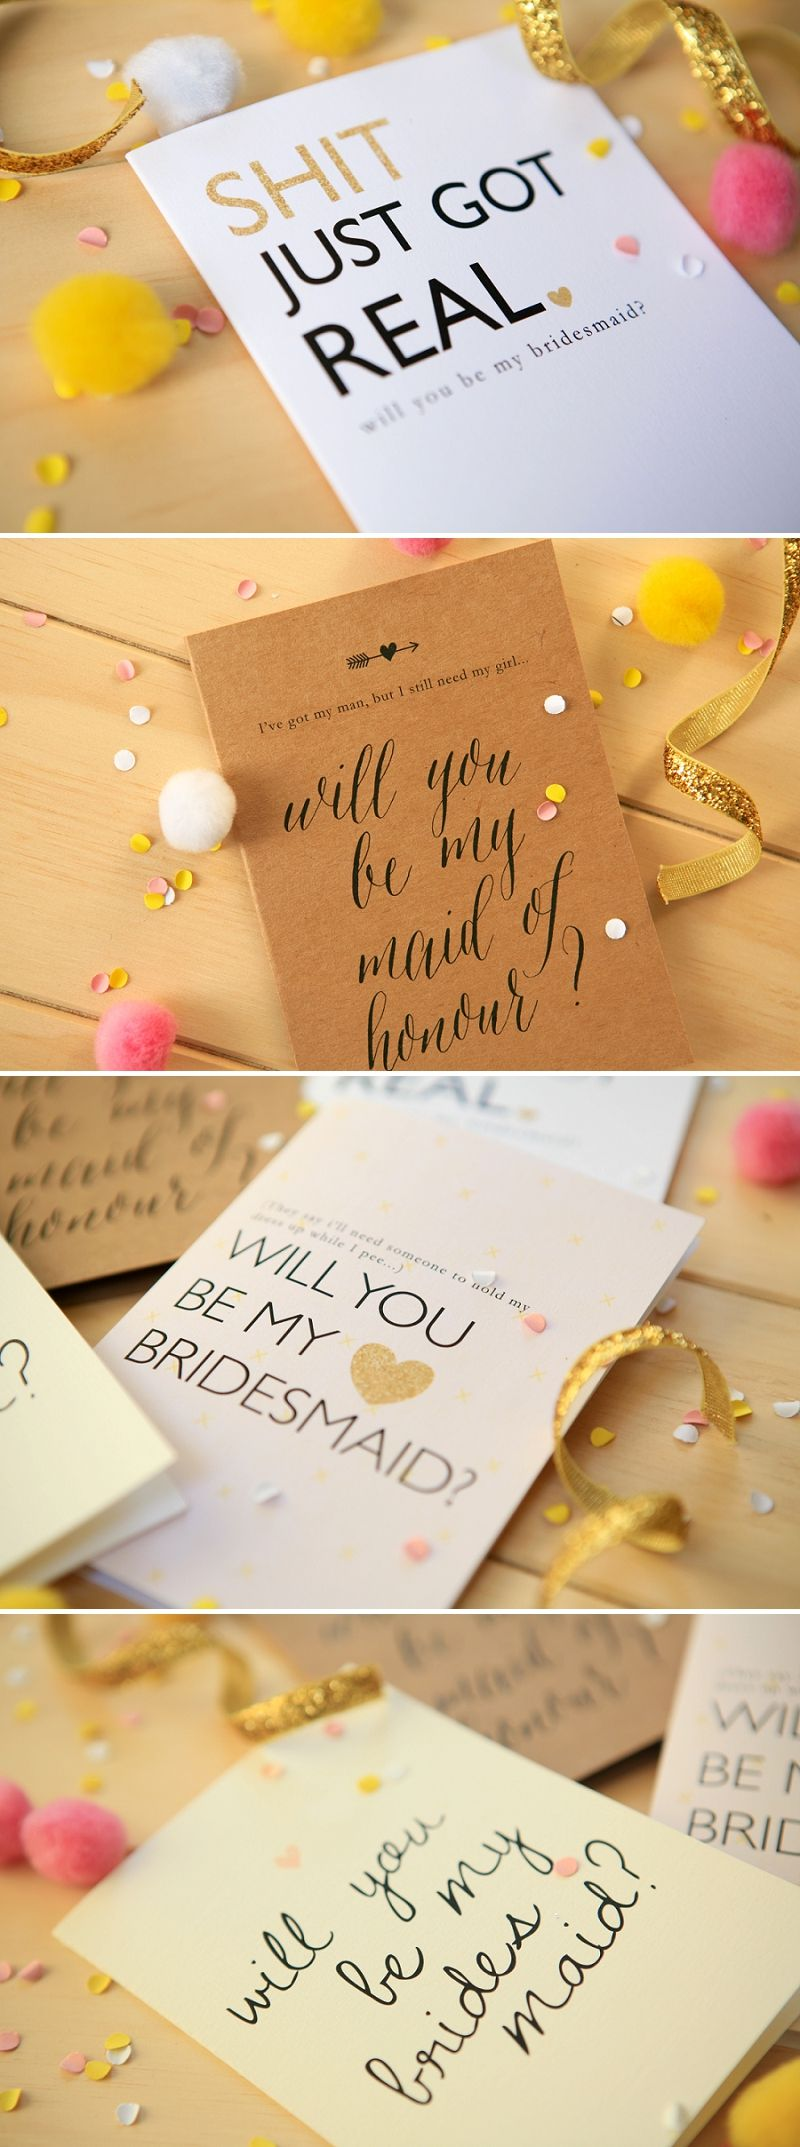 It is an image of Clever Free Printable Bridesmaid Proposal